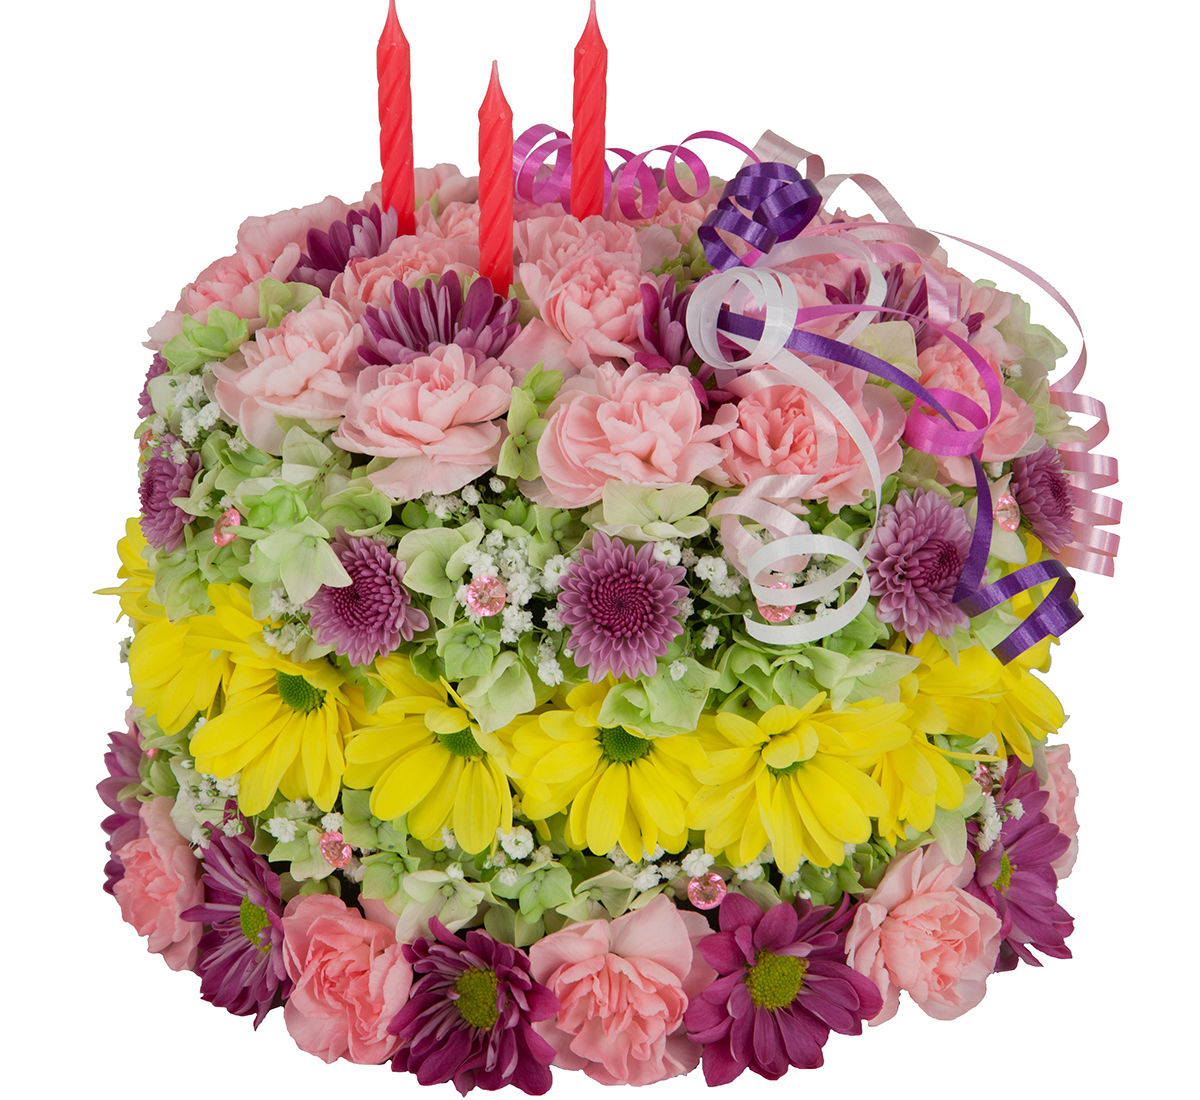 happy birthday flower cake · birthday flowers · canada flowers.ca, Beautiful flower